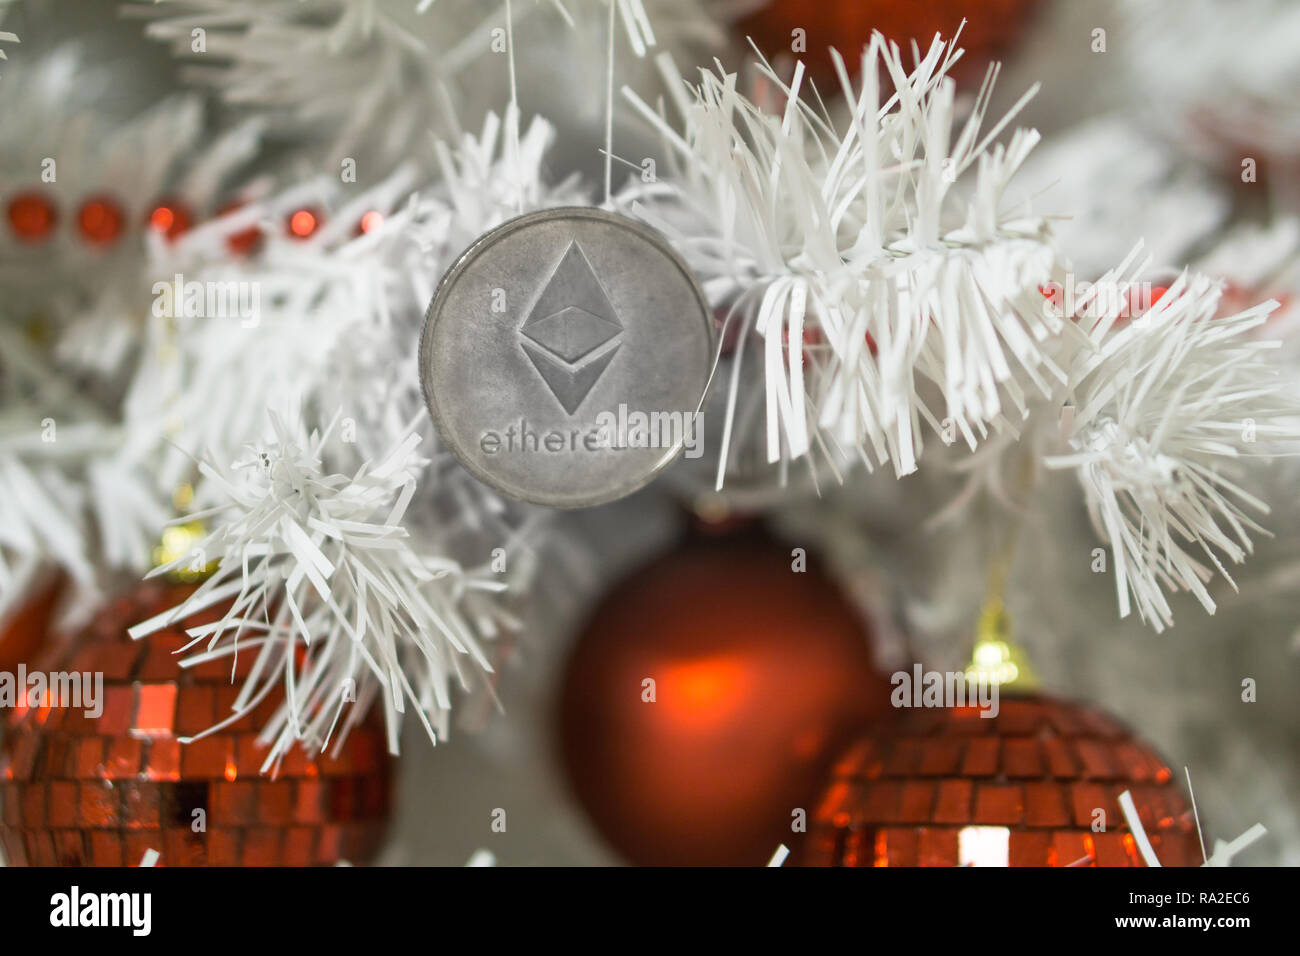 Ethereum And Christmas New Year Silver Ethereum Cryptocurrency Ethereum On A Christmas Tree Stock Photo Alamy